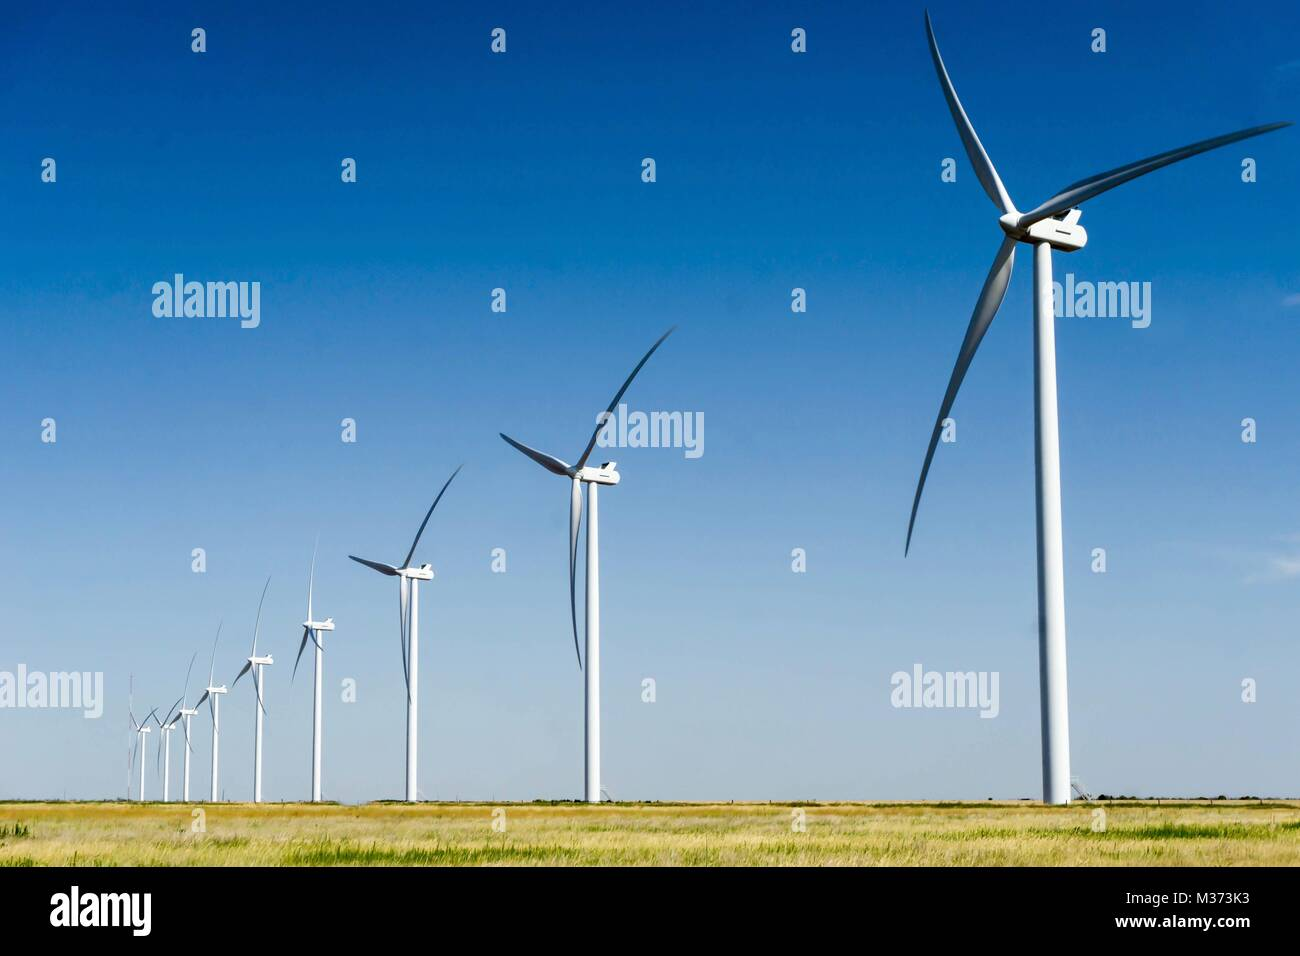 large white wind turbines on wind farm in the Texas Panhandle plains - Stock Image